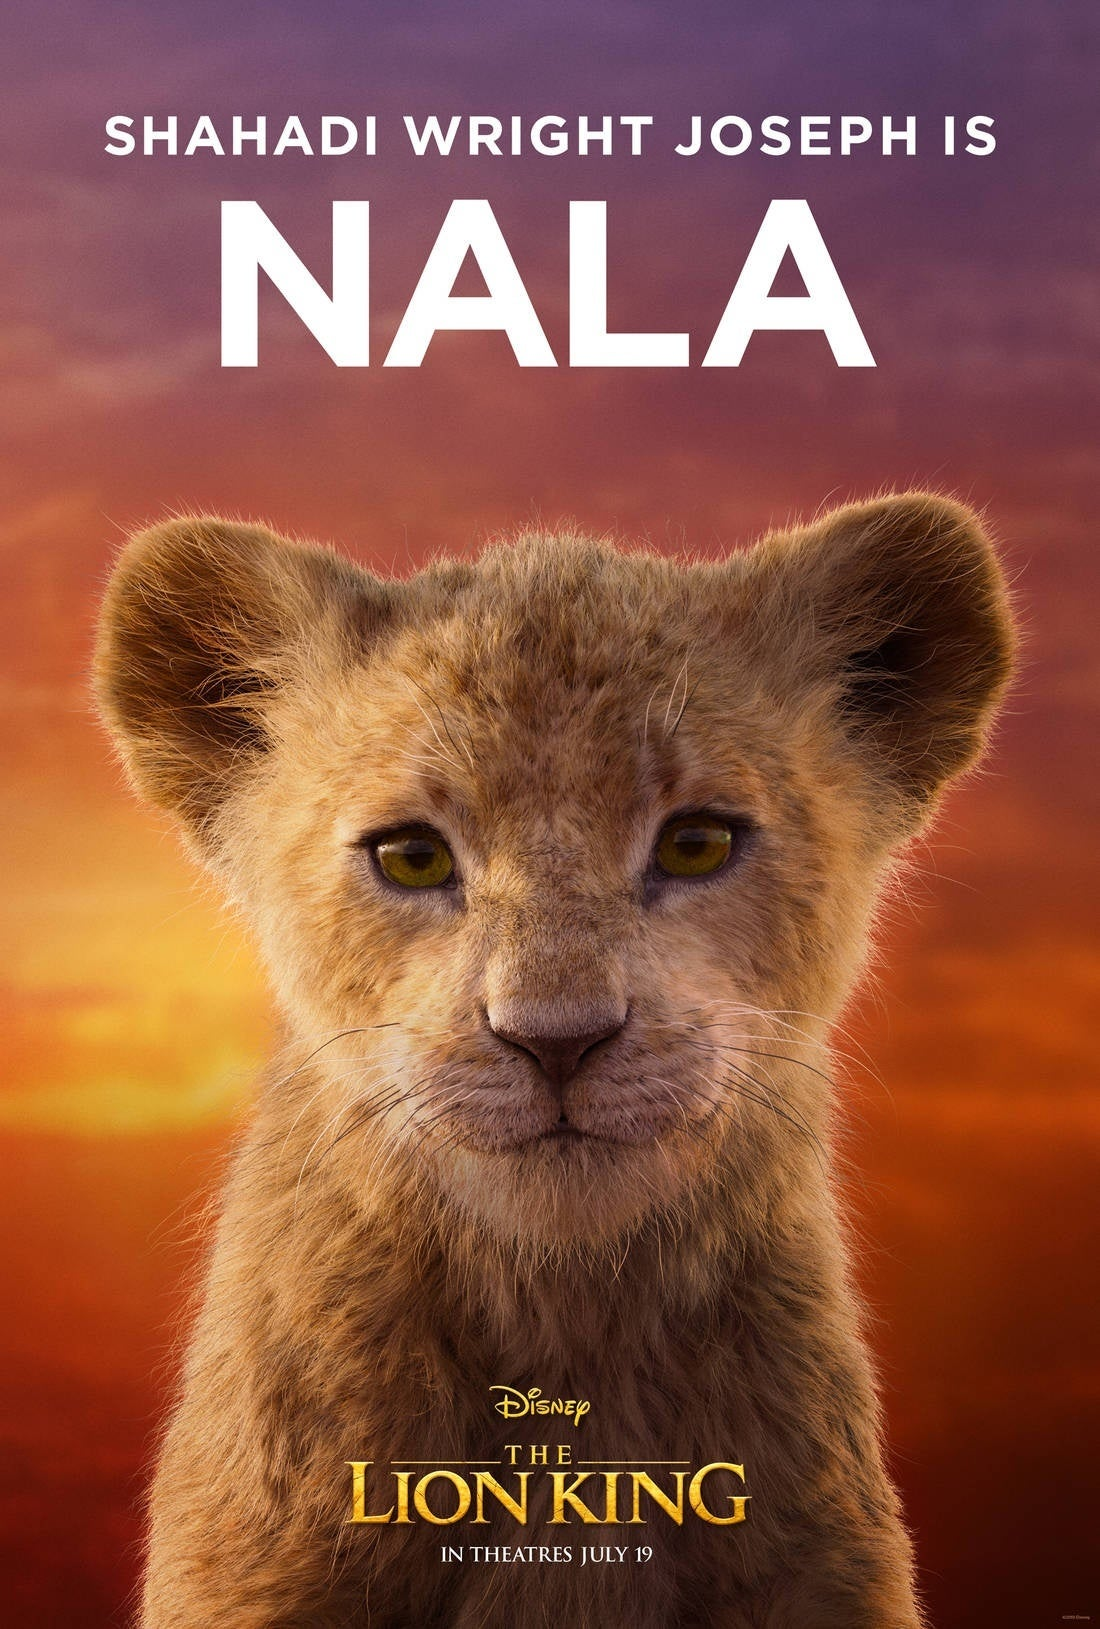 disney u0026 39 s the lion king character posters released